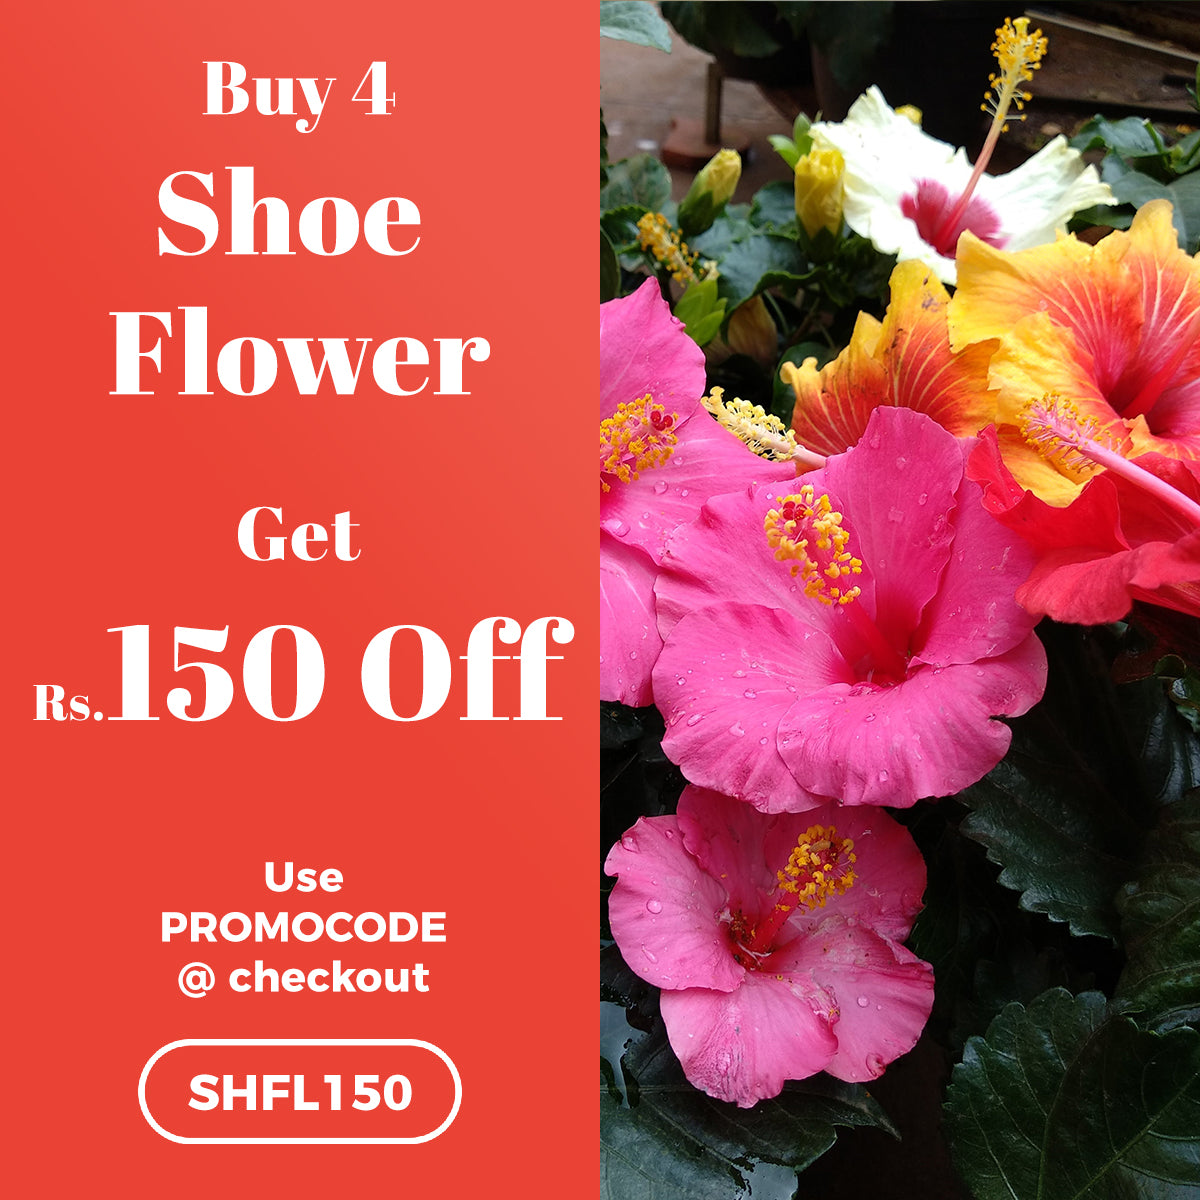 Buy 4 Shoe Flower and get Rs. 150 OFF